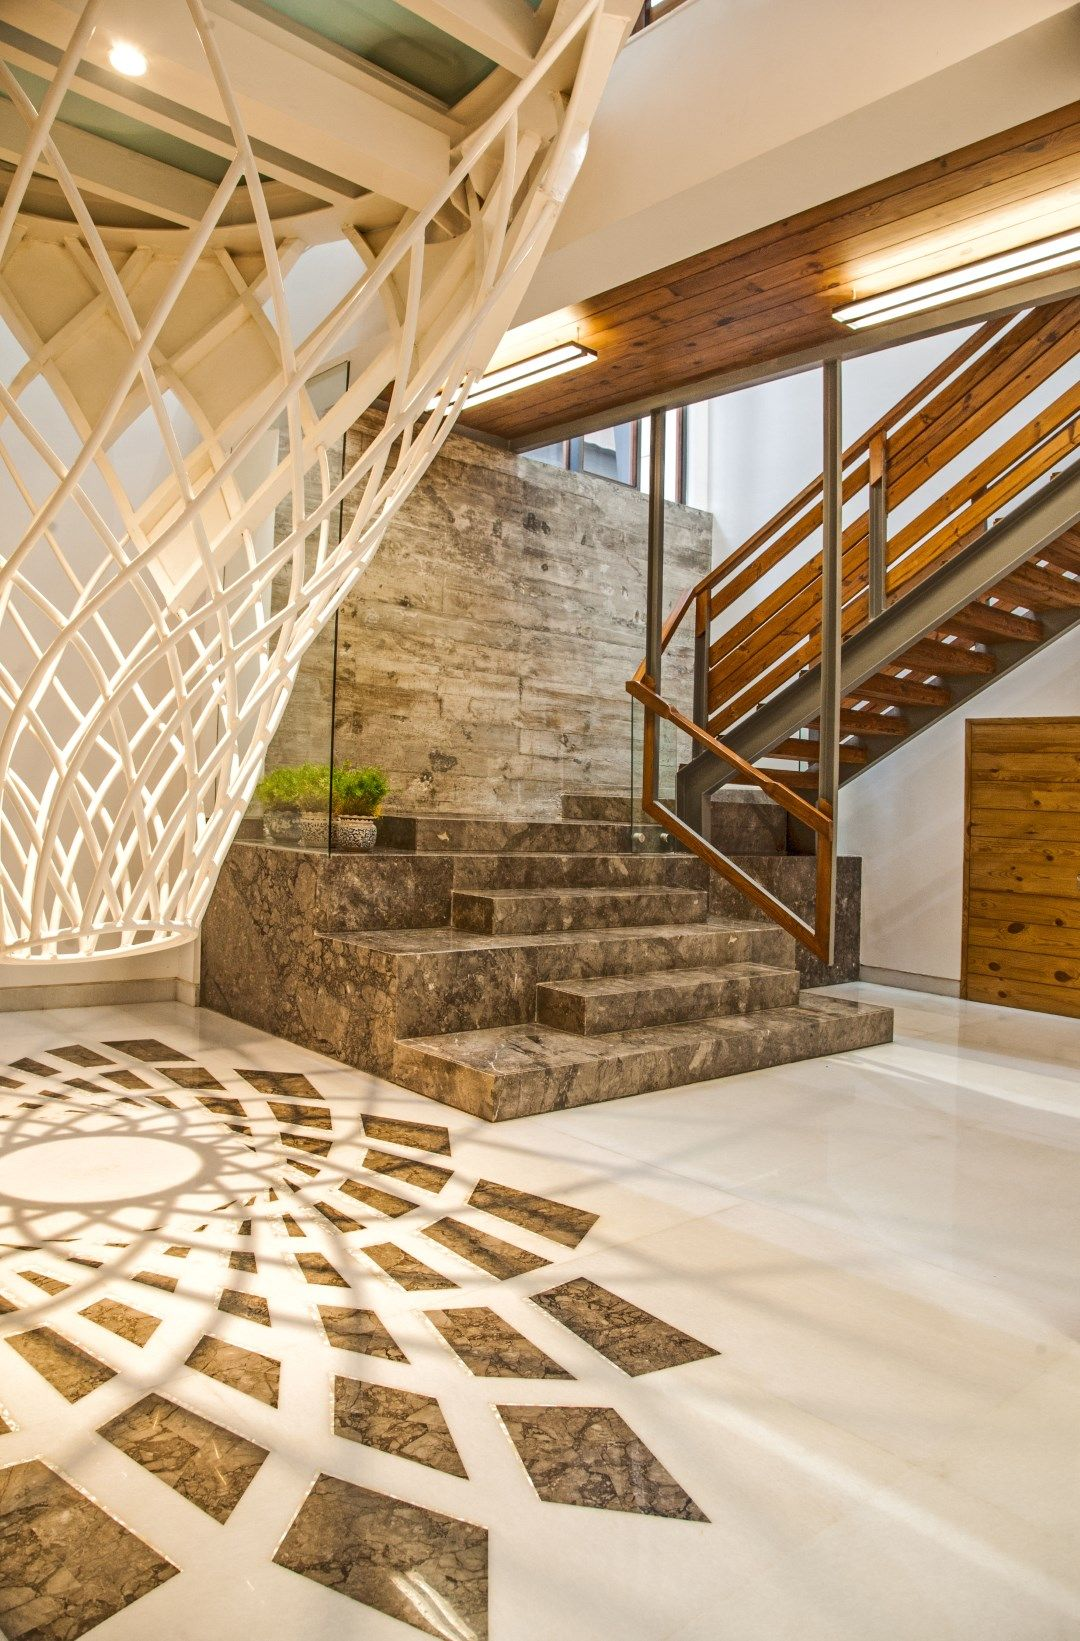 the central core house flyyingseeds design studios also best interior designs images in armoires ceiling rh pinterest